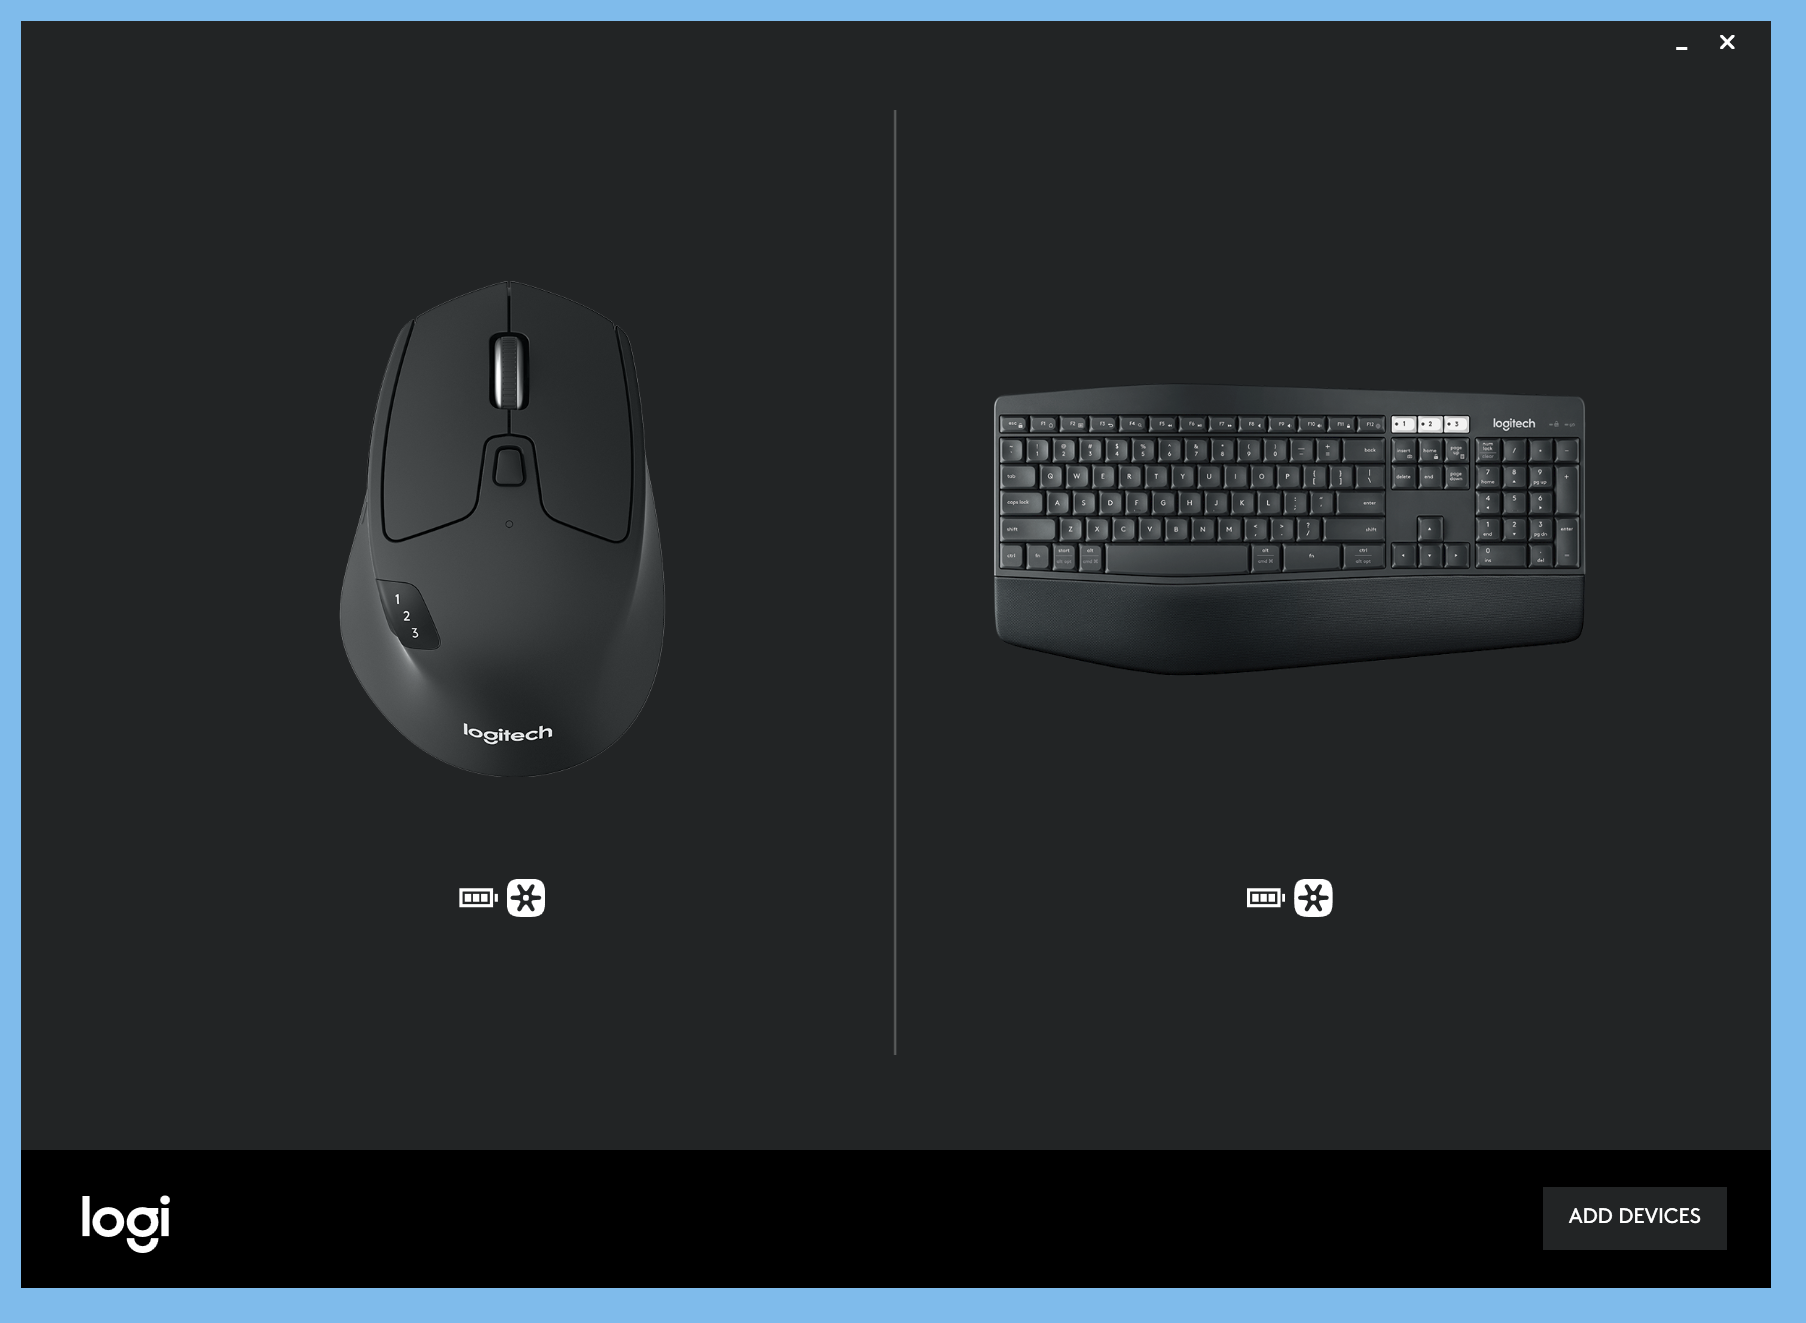 Capsule Review: Logitech MK850 Performance Wireless Keyboard and